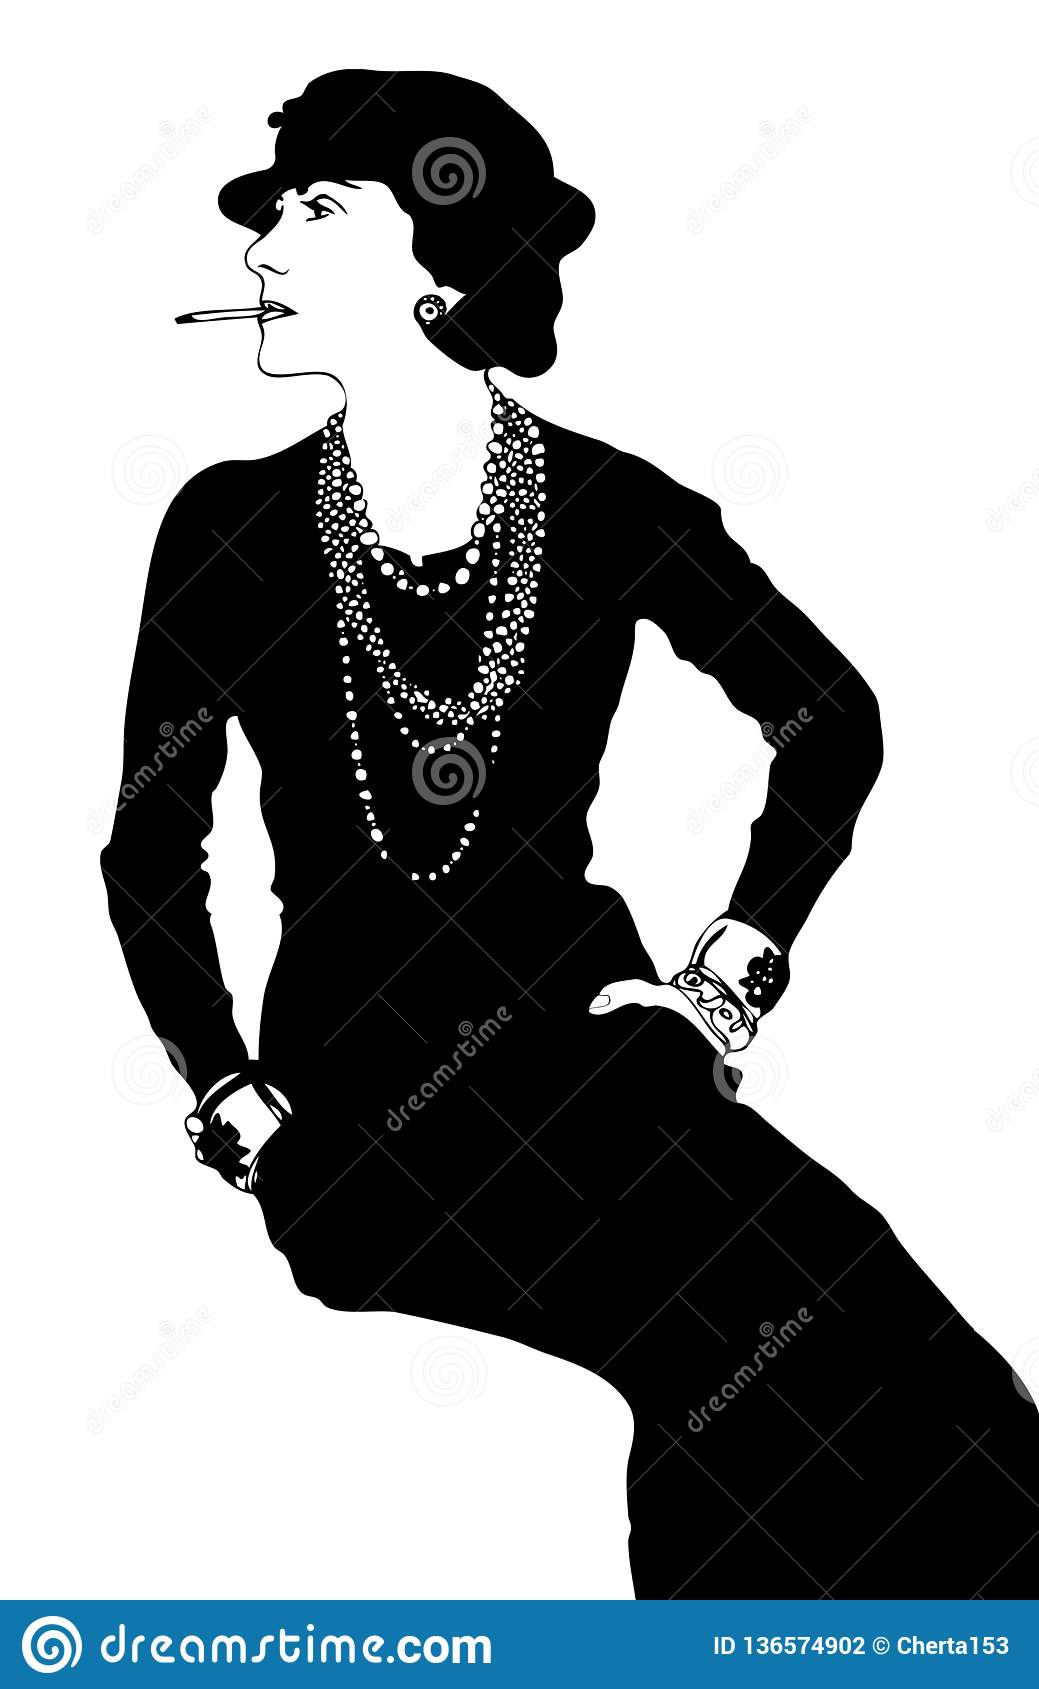 d5c3973ec20b Coco Chanel vector stylization. Coco style shannel. Black and white. More  similar stock illustrations